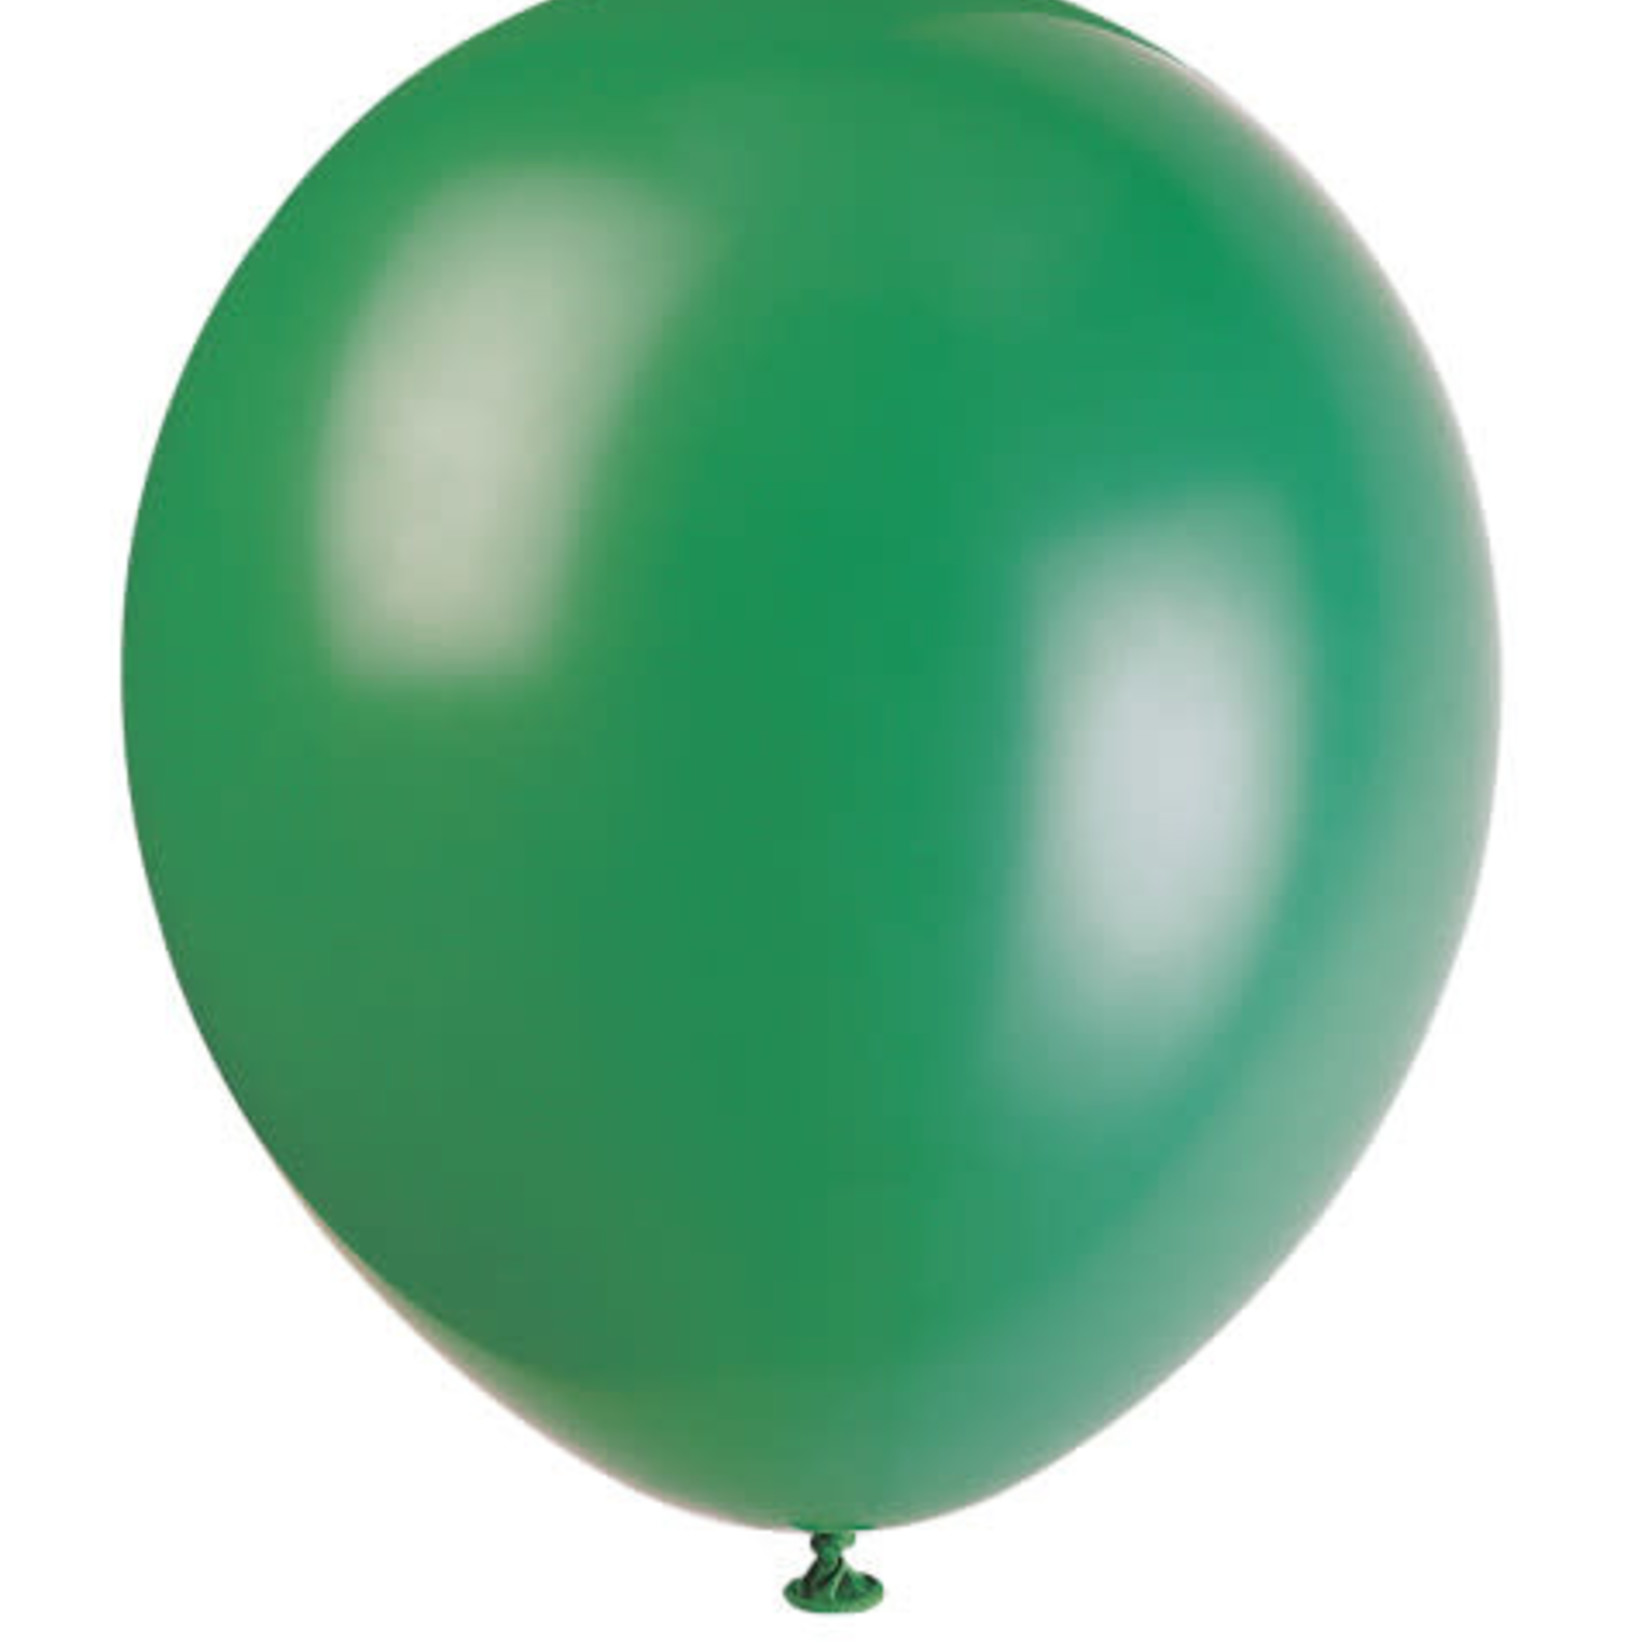 10 12'' FOREST GREEN BALLOONS